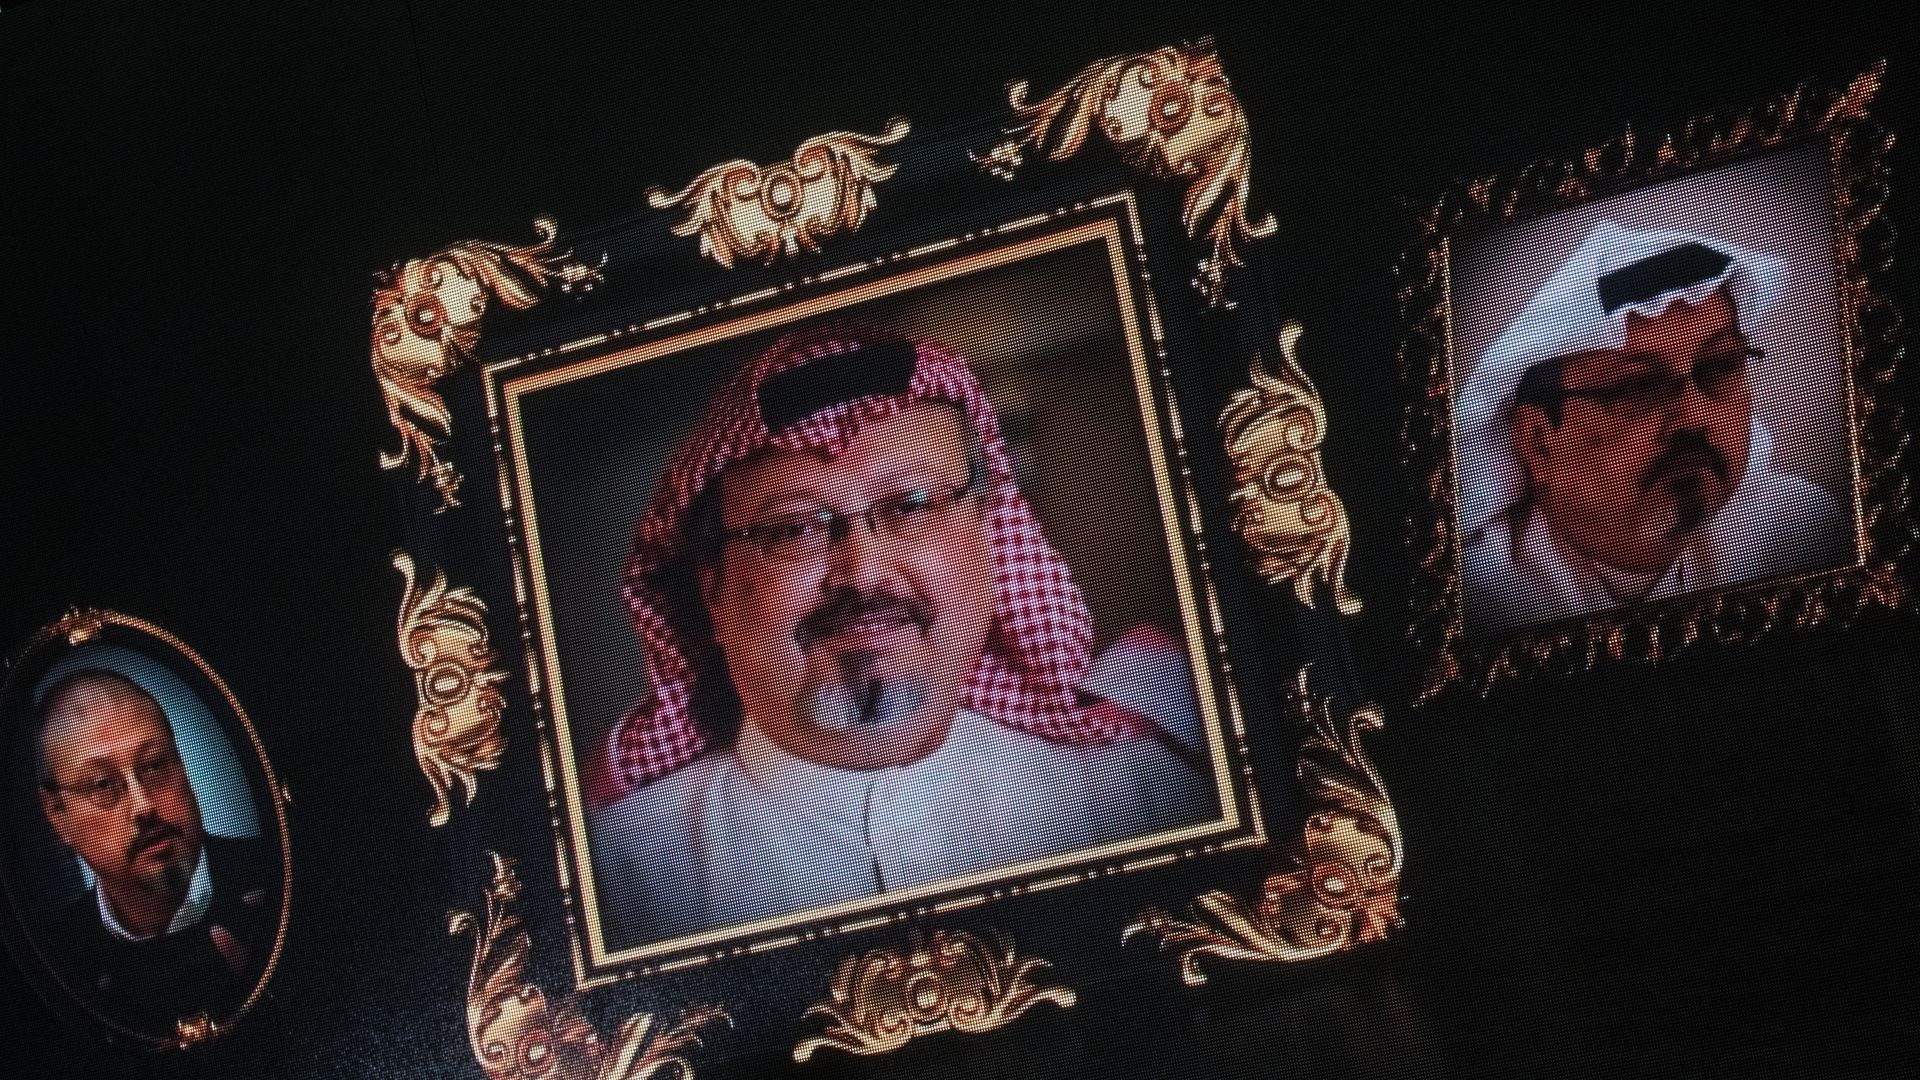 Picture of murdered journalist Jamal Khashoggi